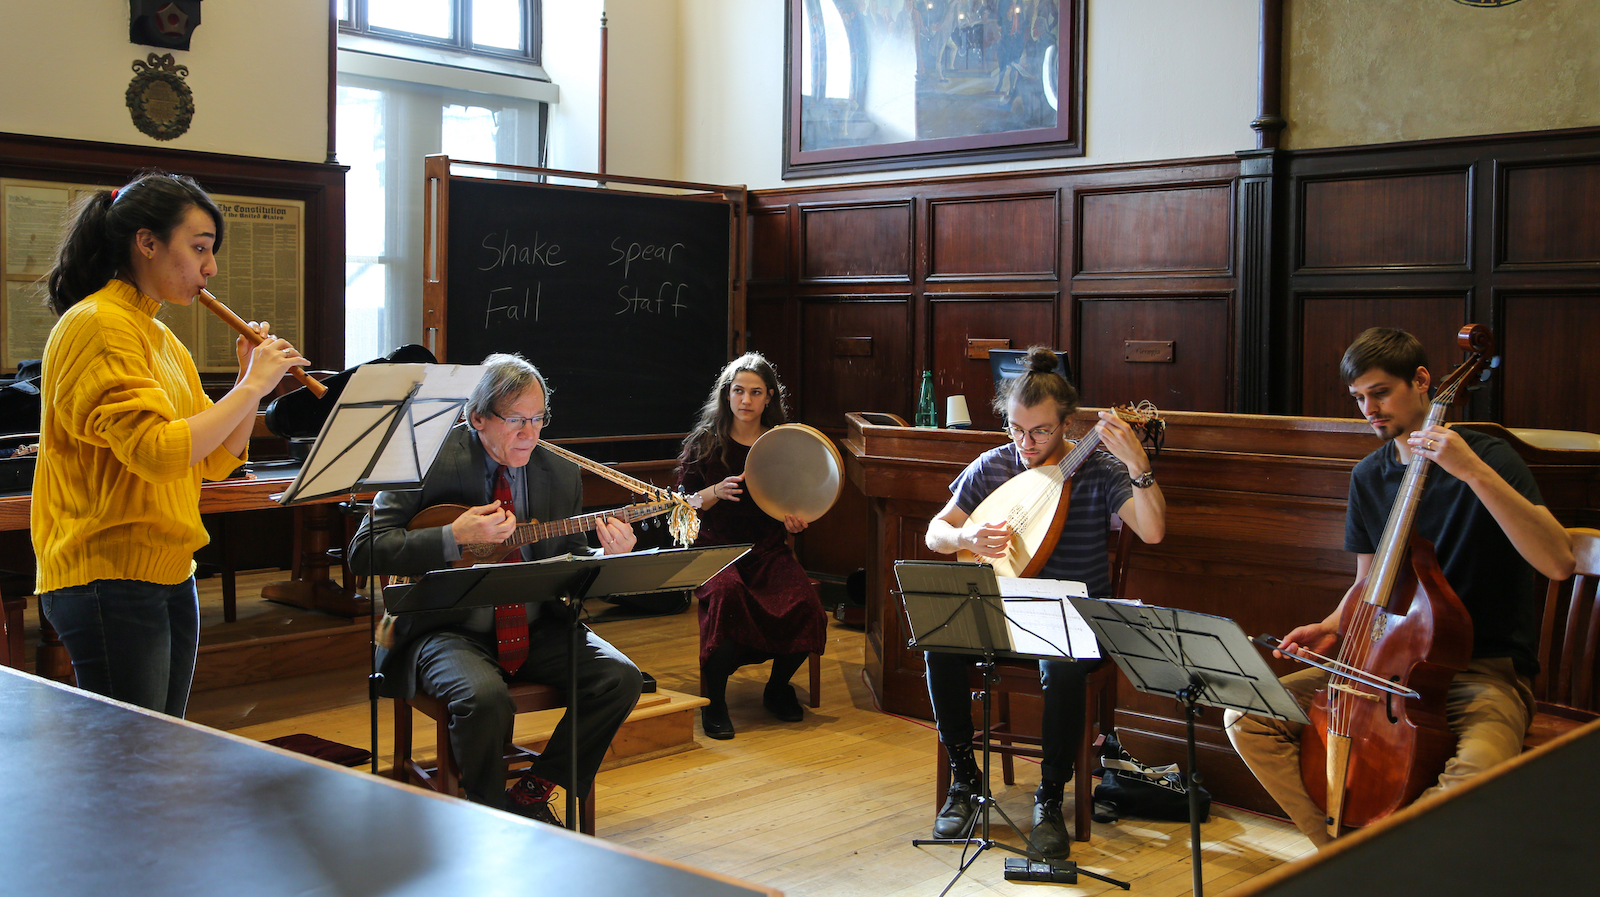 Five musicians playing instruments at a Doyle Seminar performance